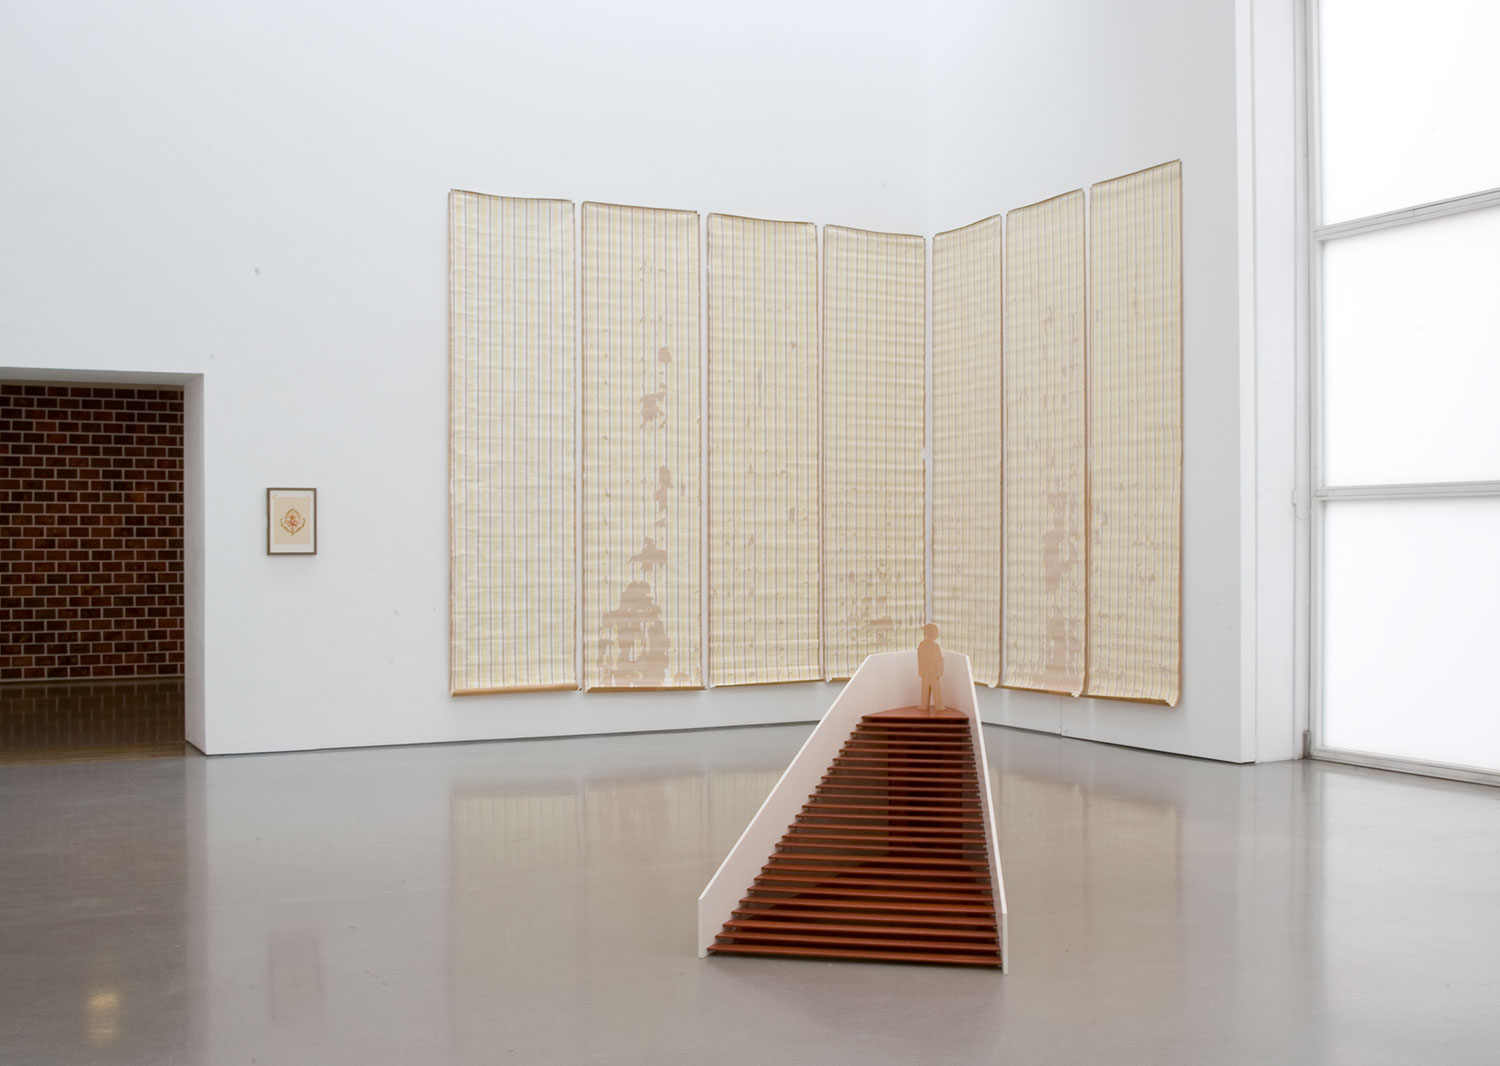 Installation view of Thomas Schutte: Fake/Function 9